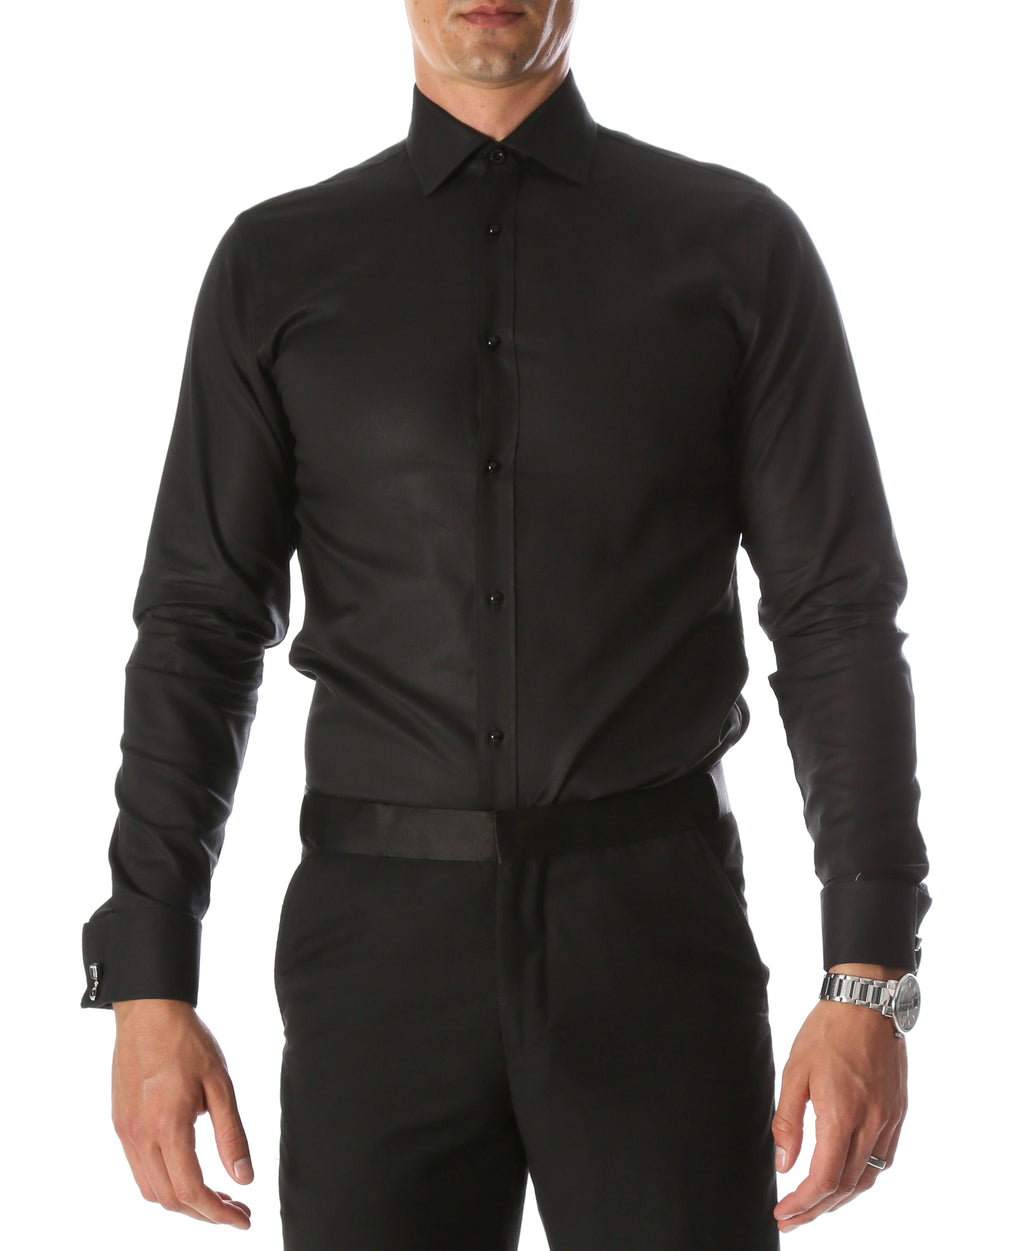 Ferrecci Men's Black Venice Slim Fit Pique Lay Down Collar Shirt - Giorgio's Menswear